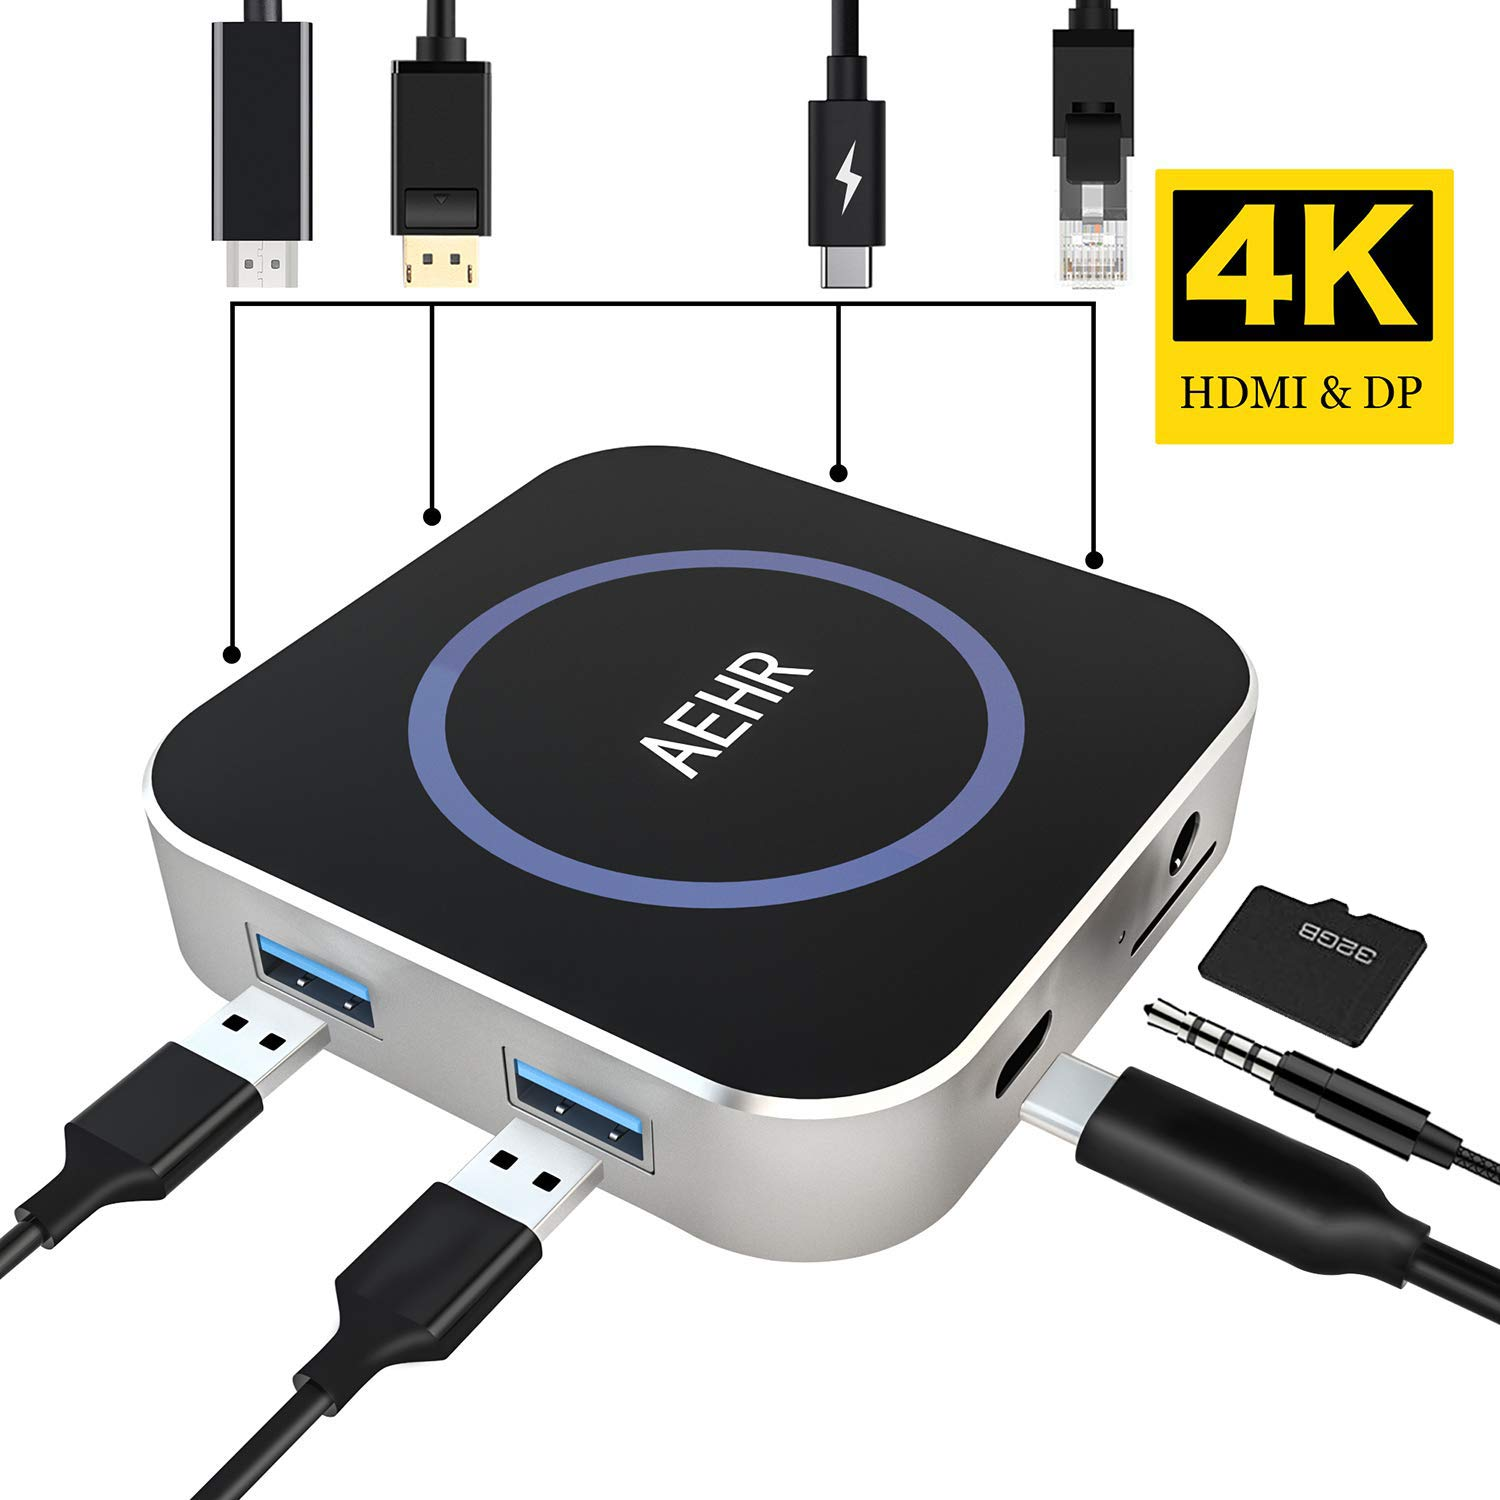 AEHR USB C Hub, 8-in-1 Type C Hub Adapter with Ethernet Port/Display Port, USB C to HDMI 4K and DP 4K, 2 USB 3.0 Ports,Earphone Port,TF Card Reader, Portable for MacBook Pro/Type C Device